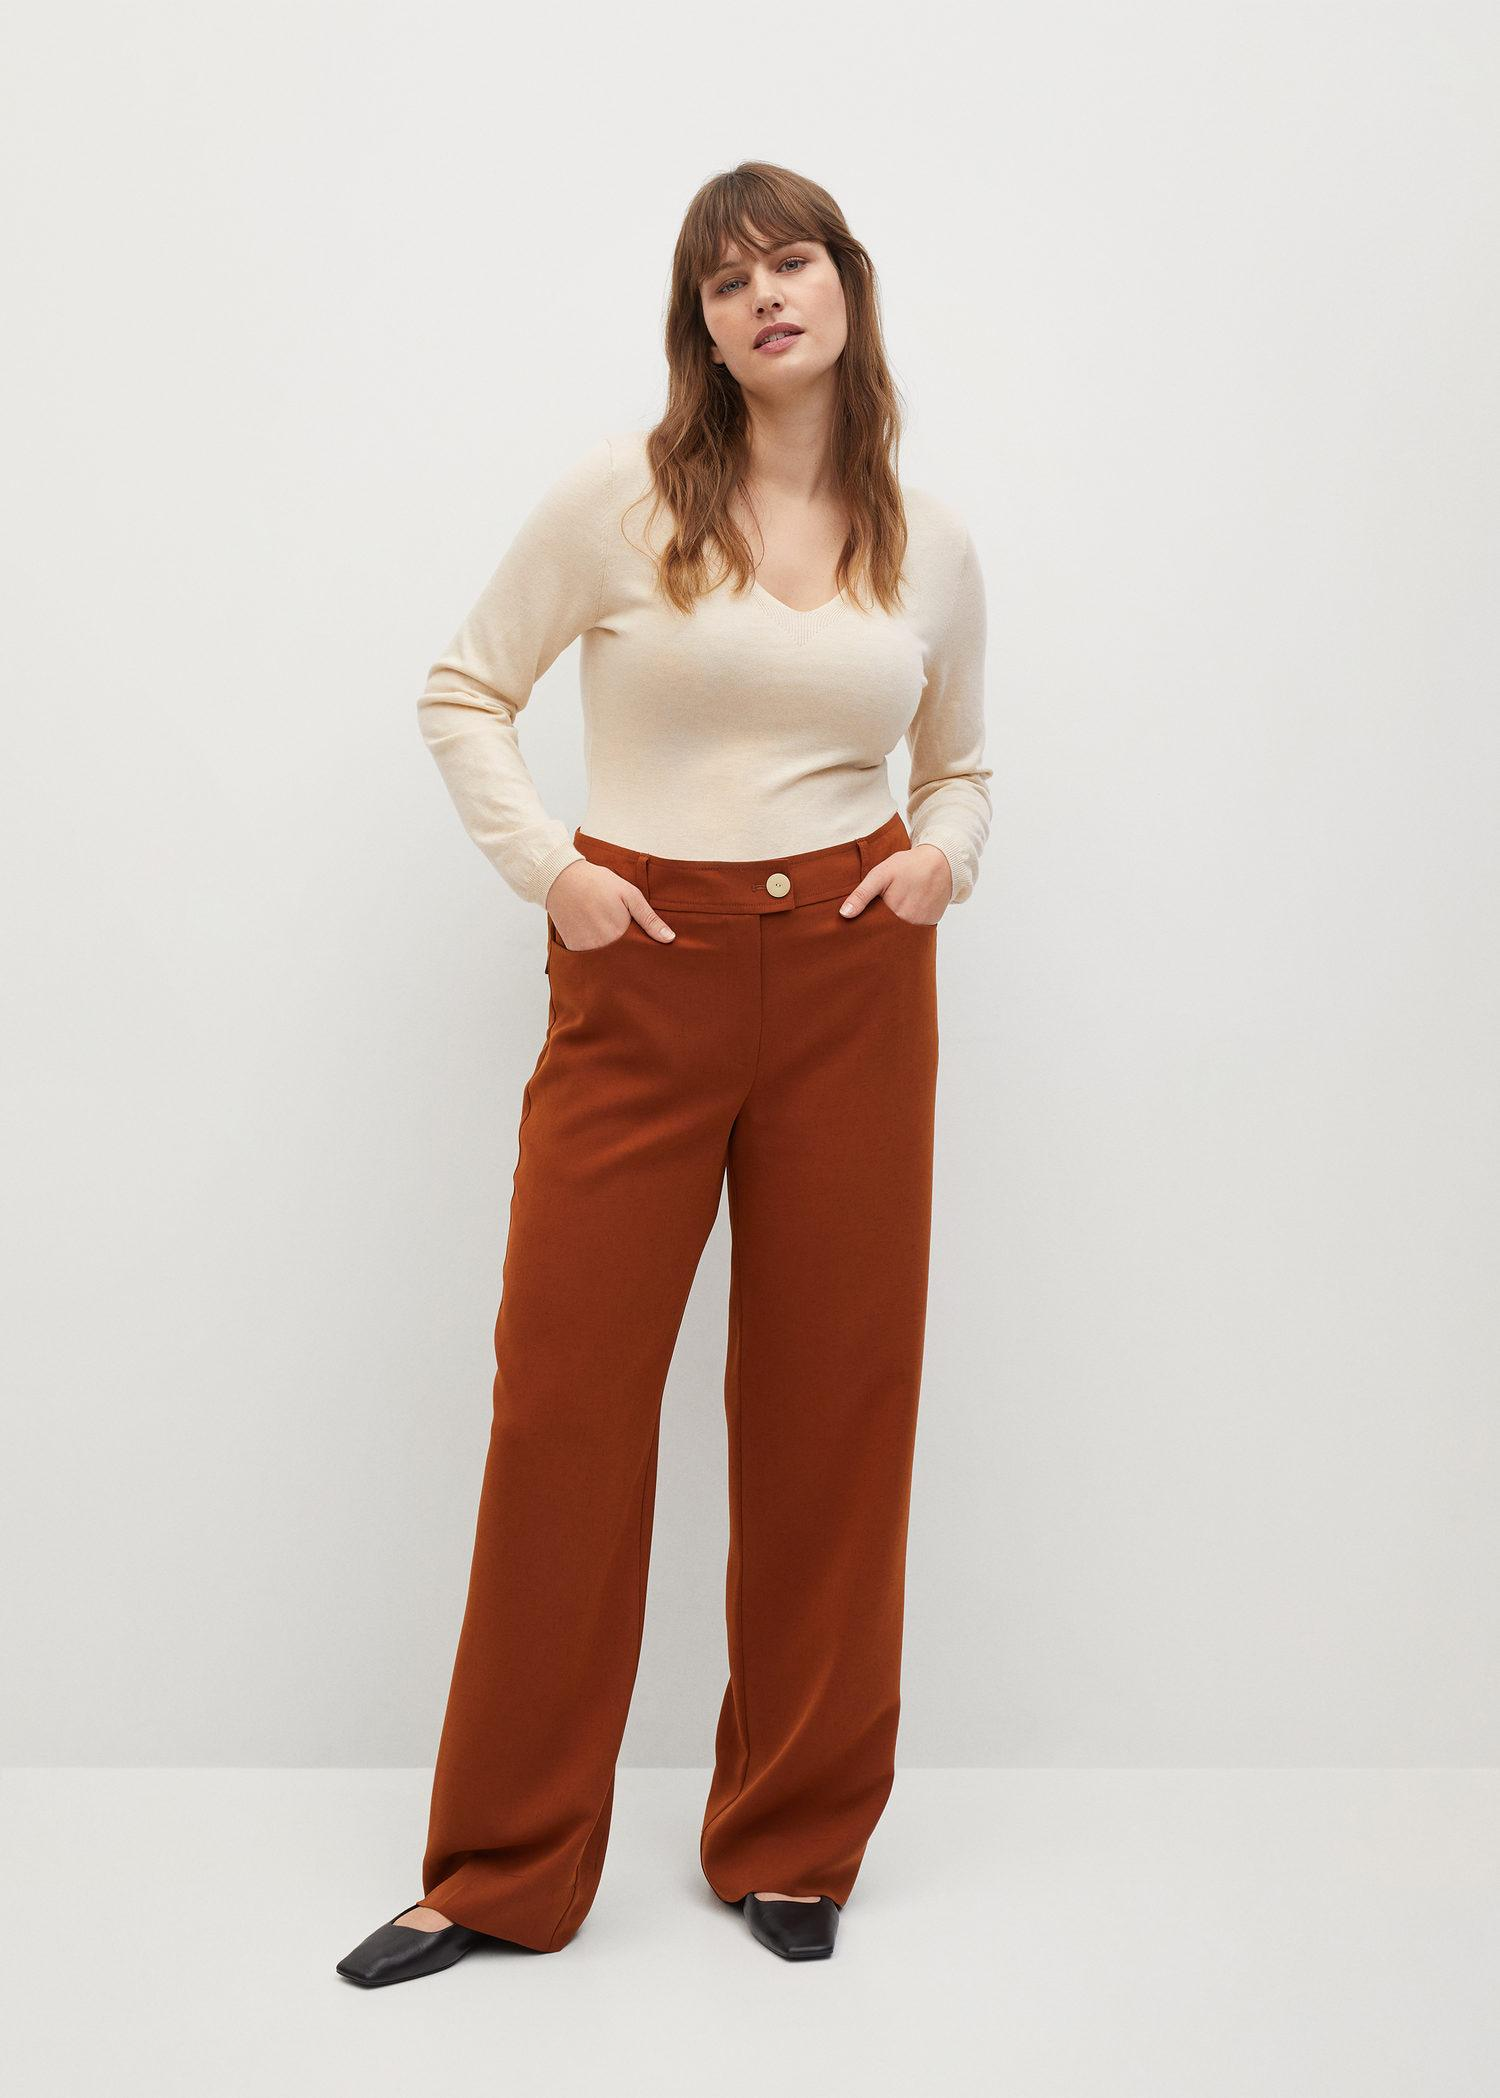 Long-sleeved knitted body